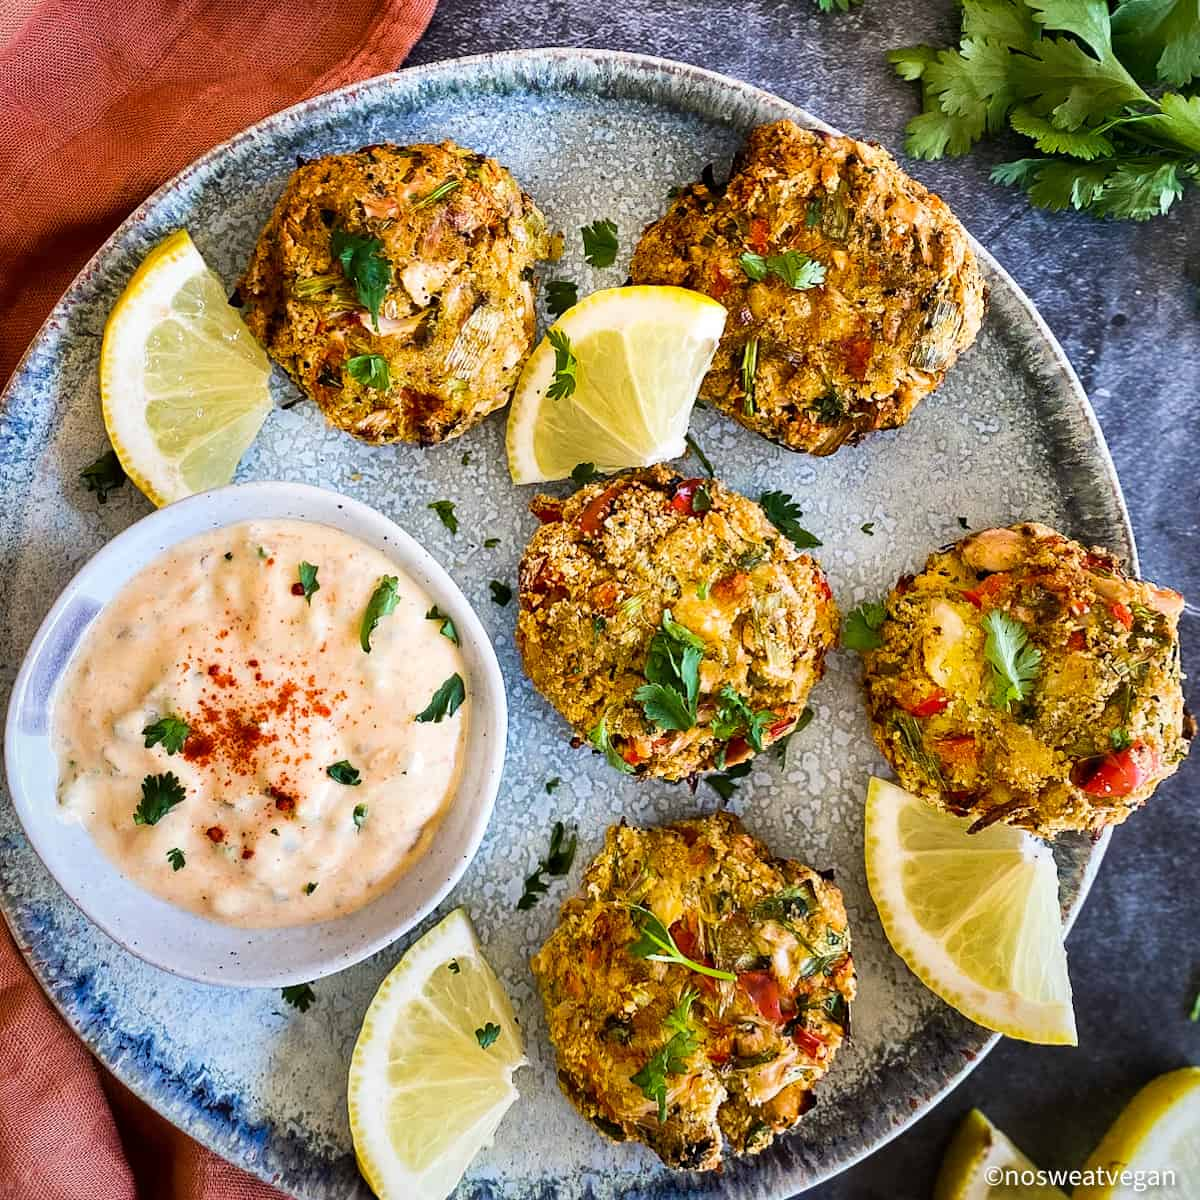 Vegan remoulade on plate with vegan crab cakes.